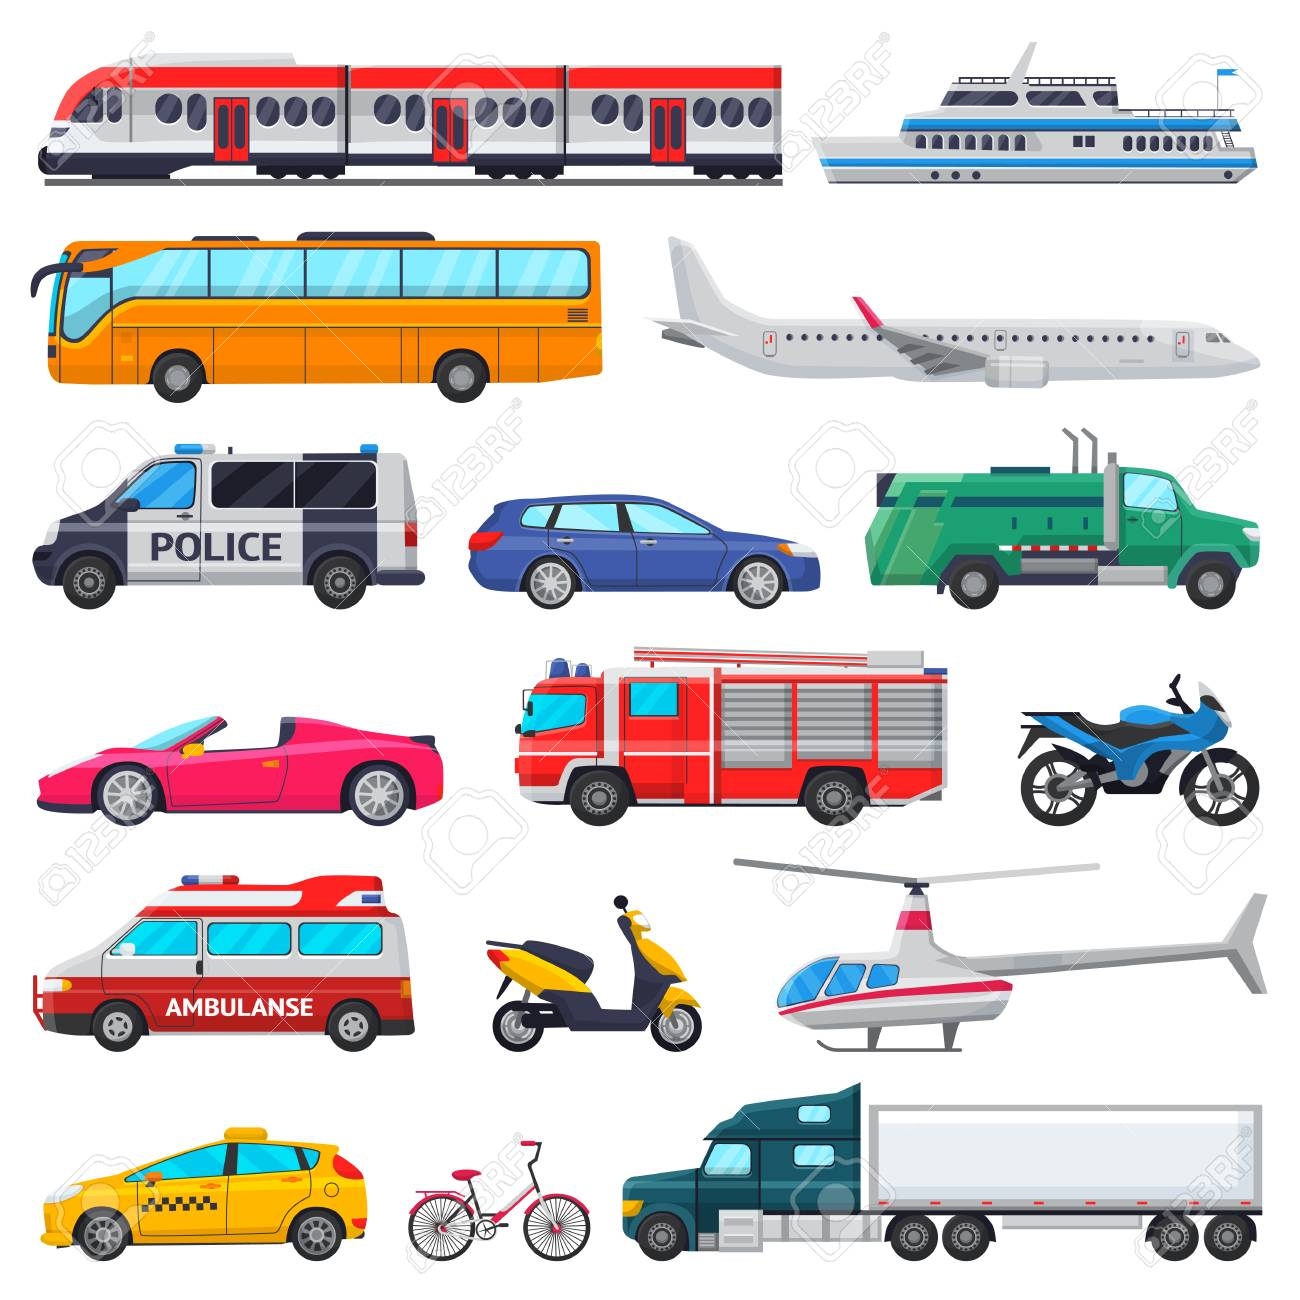 Transport vector public transportable vehicle plane or train and car or bicycle for transportation in city illustration set of ambulance fire-engine and police car isolated on white background - 97426184